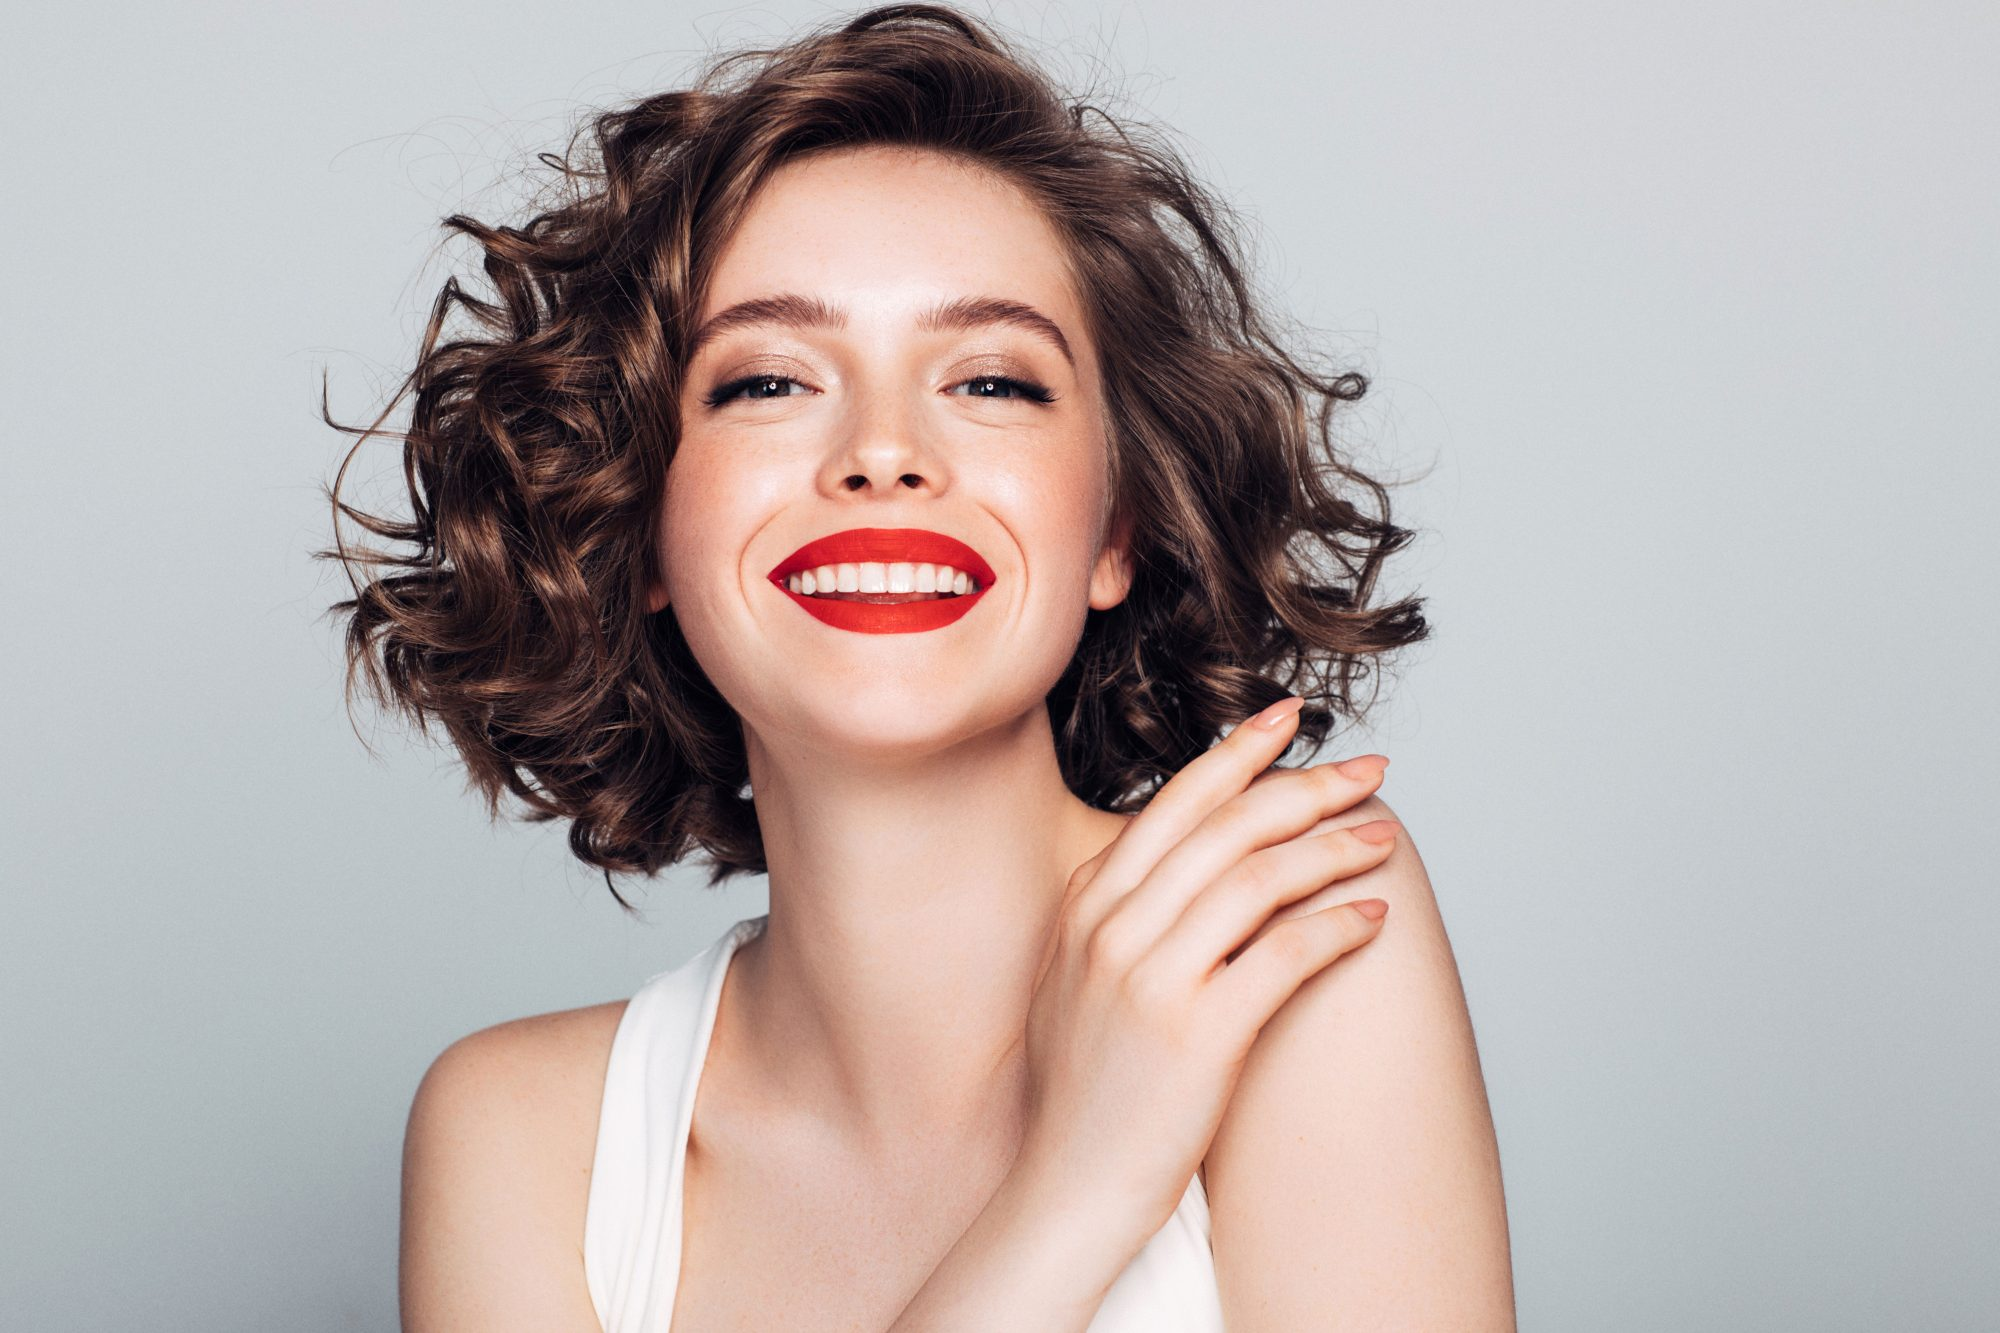 Woman Smiling with Curly Hair